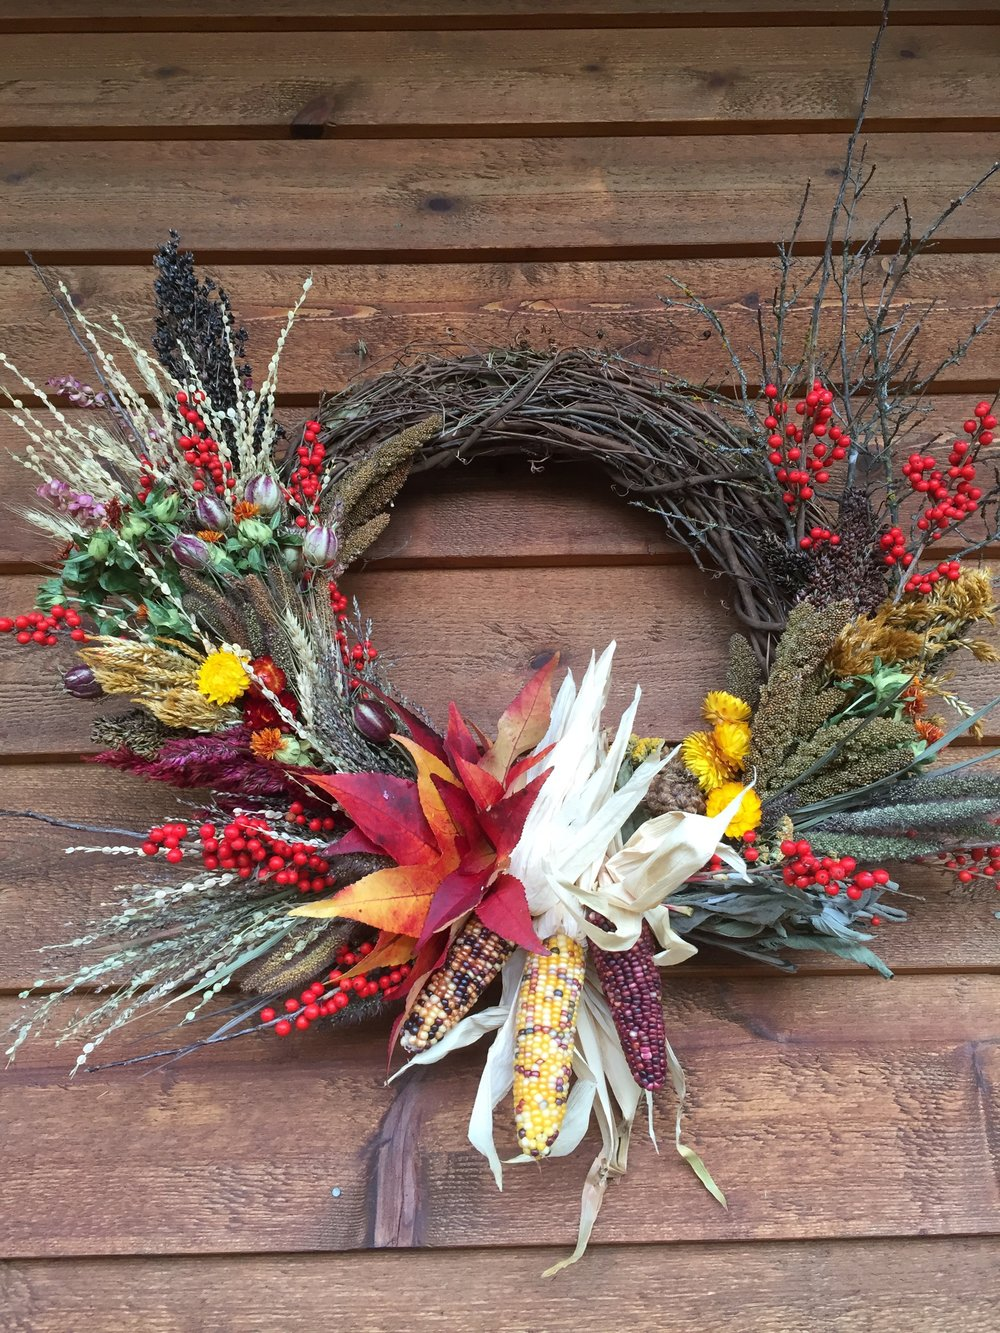 Wreath-making Workshops, November